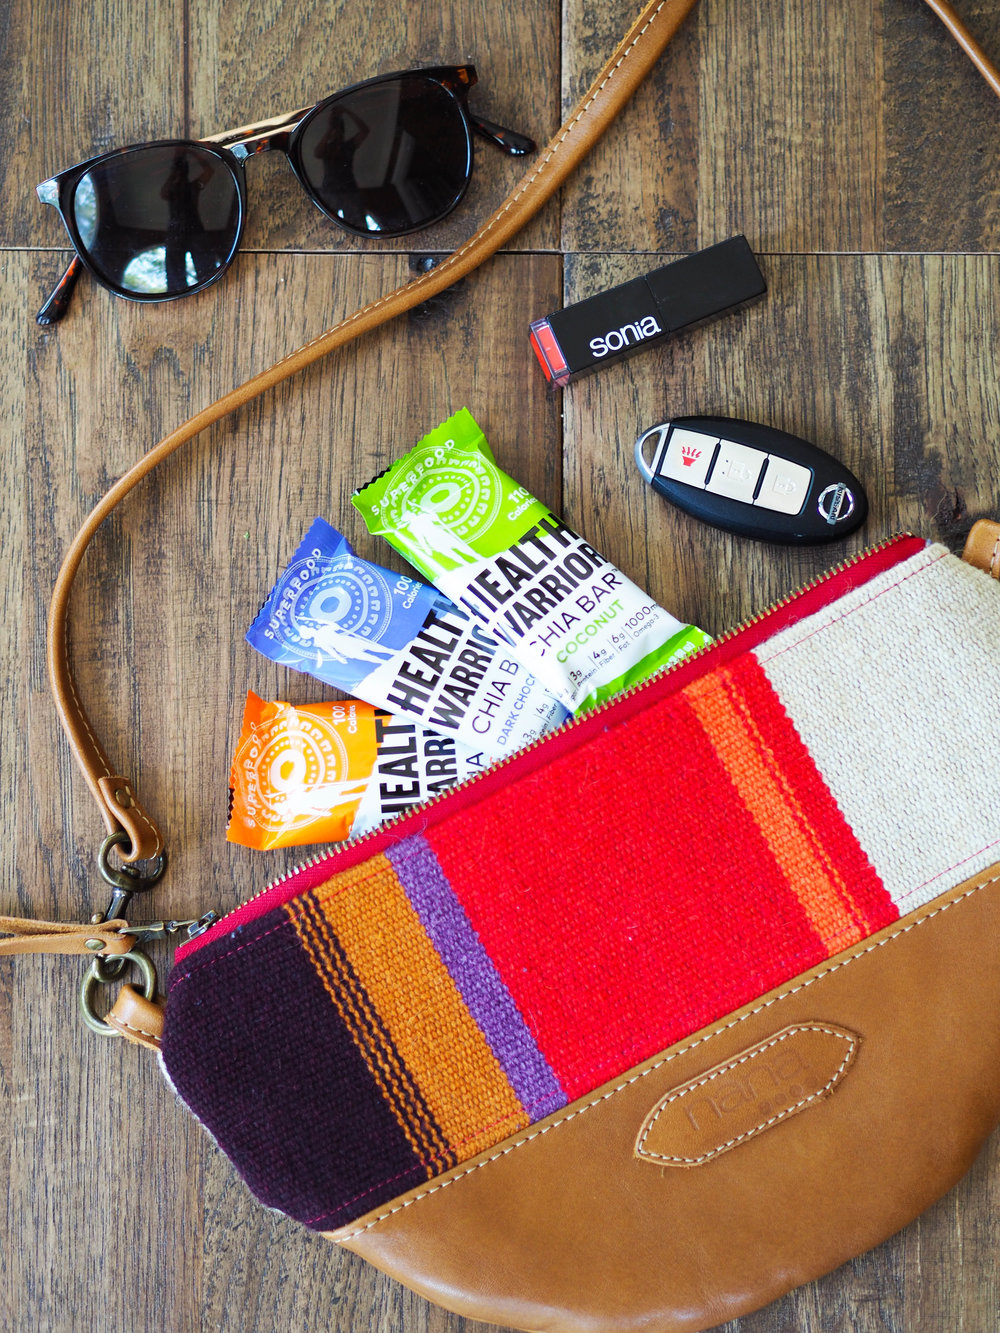 Don't forget to pack Health Warrior chia bars in your purse for a quick snack!